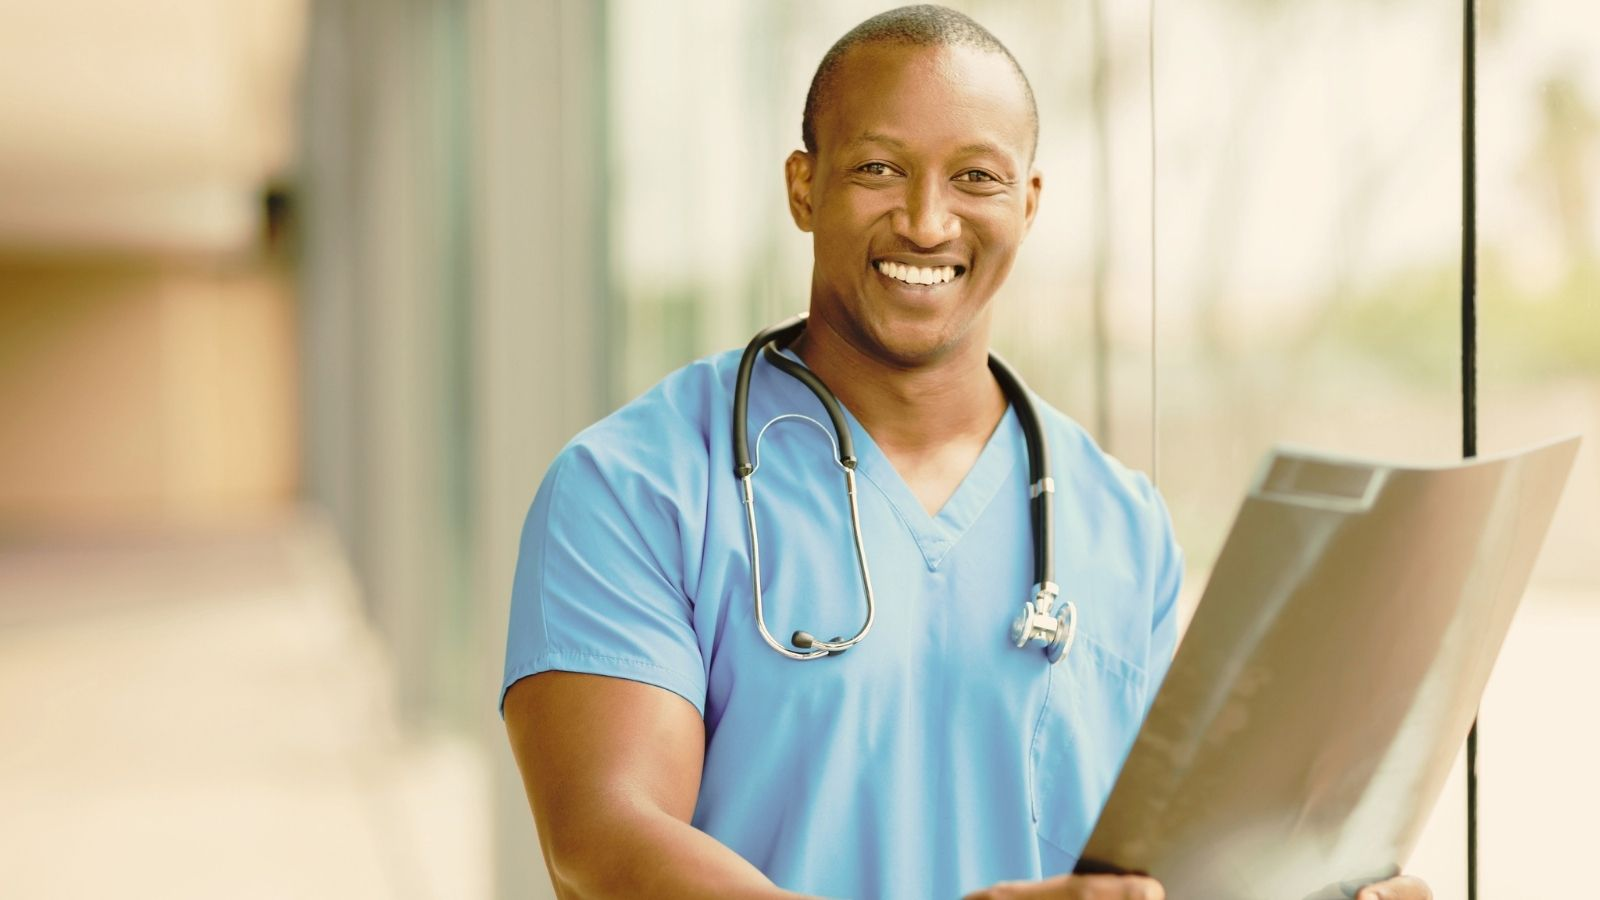 NMBI 101: Application Guide for Foreign Healthcare Professionals